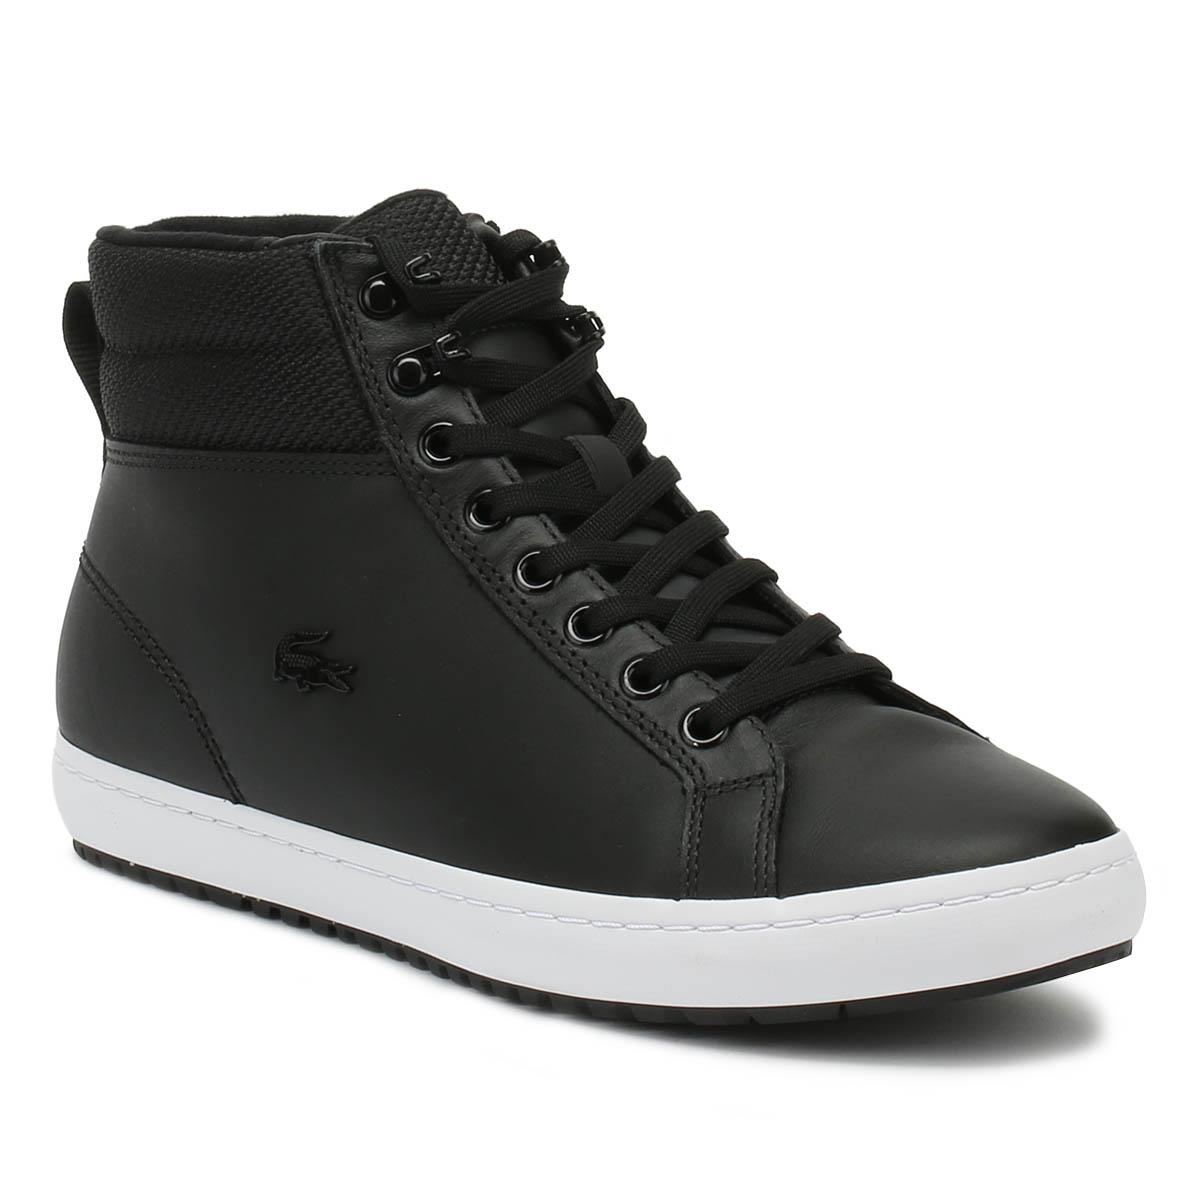 a364be0b375048 Lyst - Lacoste Straightset Insulac 318 1 Womens Black Trainers in Black